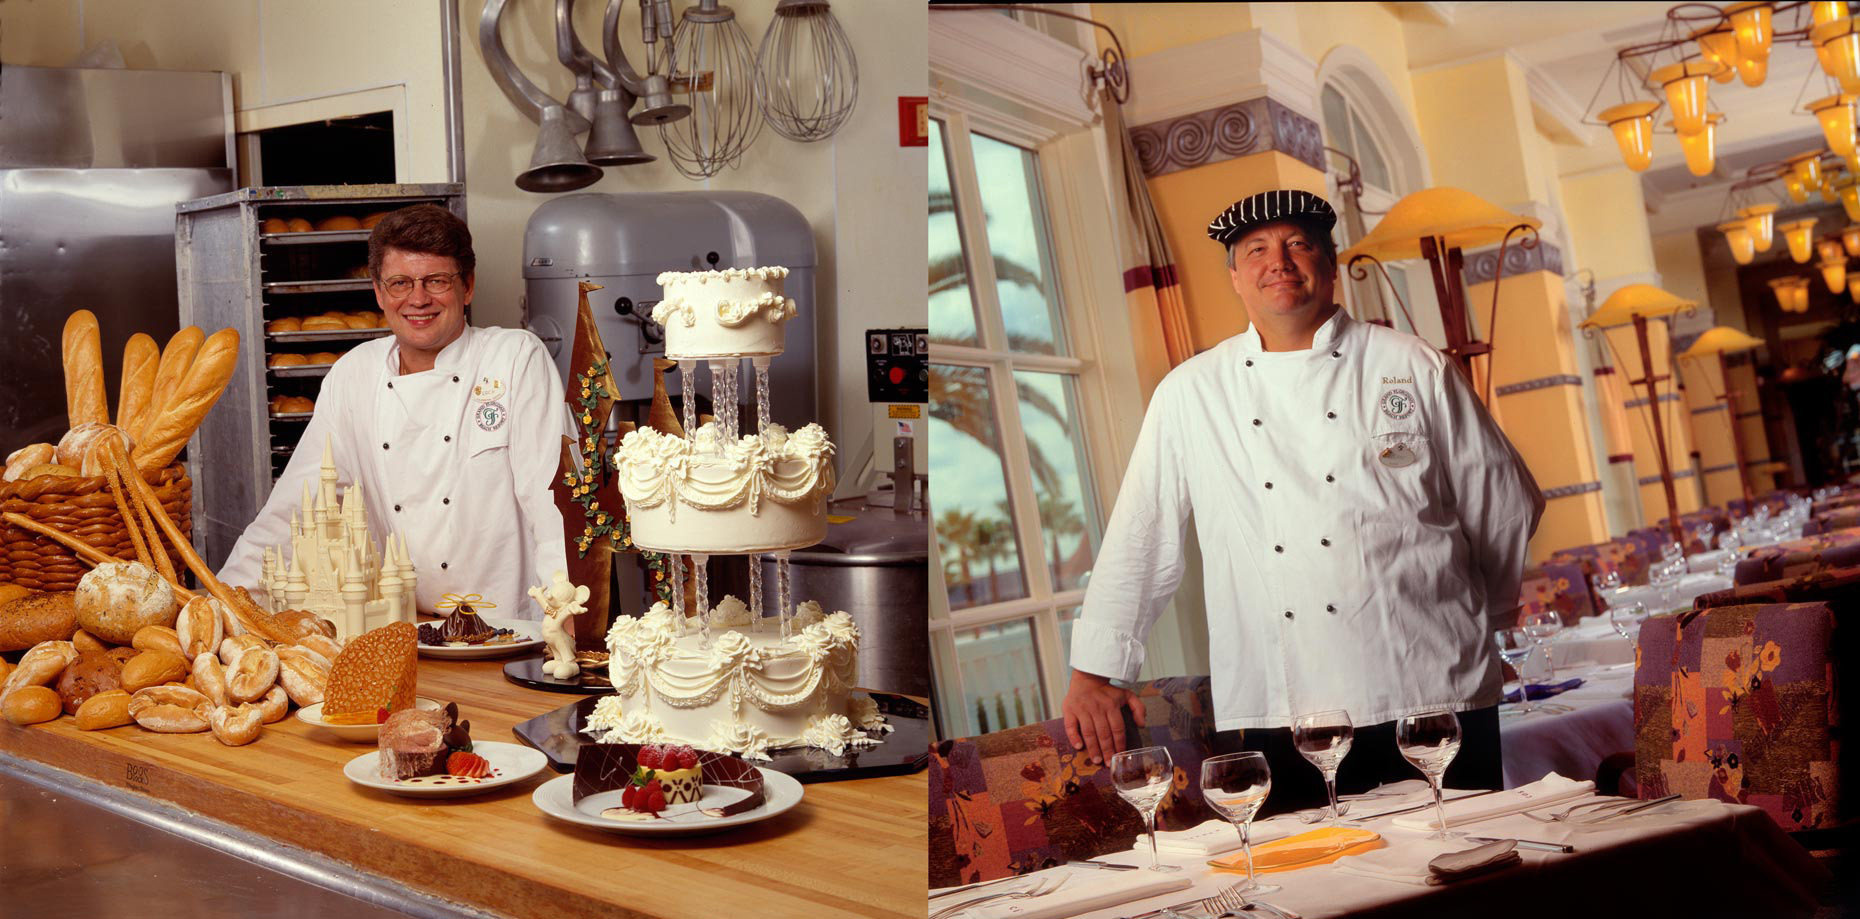 Lifestyle Photogrpahy | Portrait of Disney Chefs